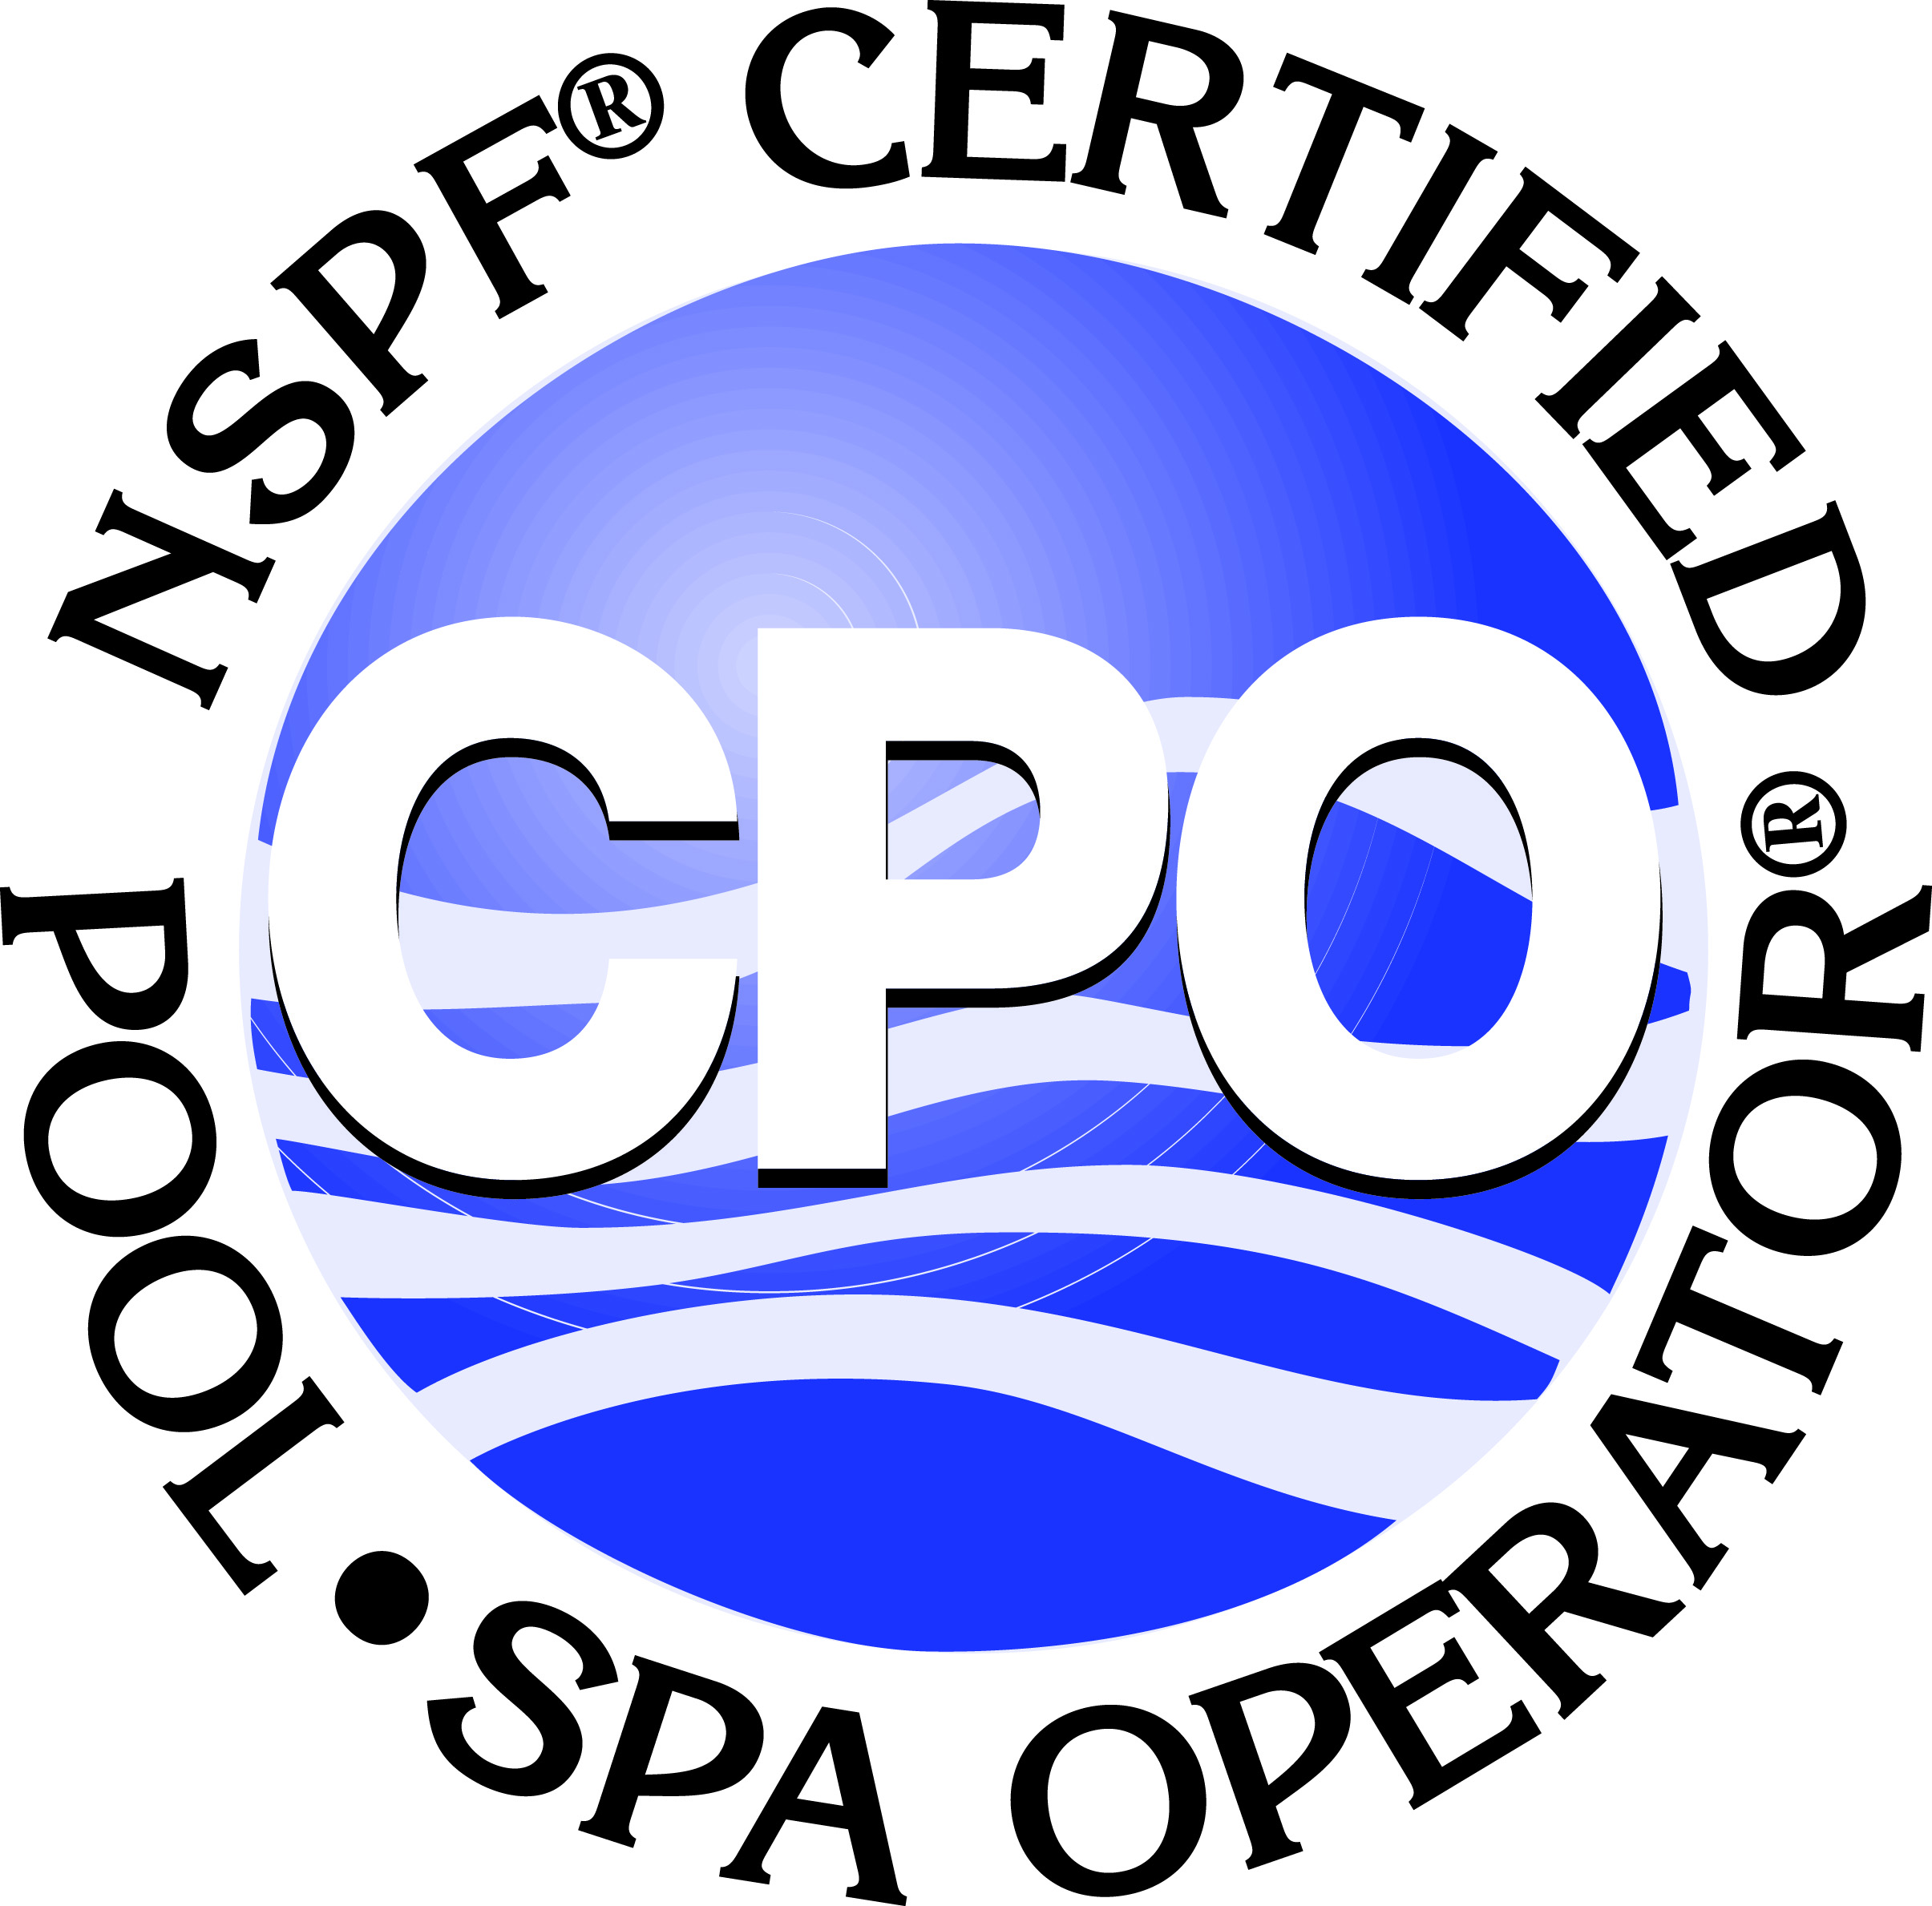 Tmi 39 s cpo certified pool spa operator certification program for Swimming pool certification course